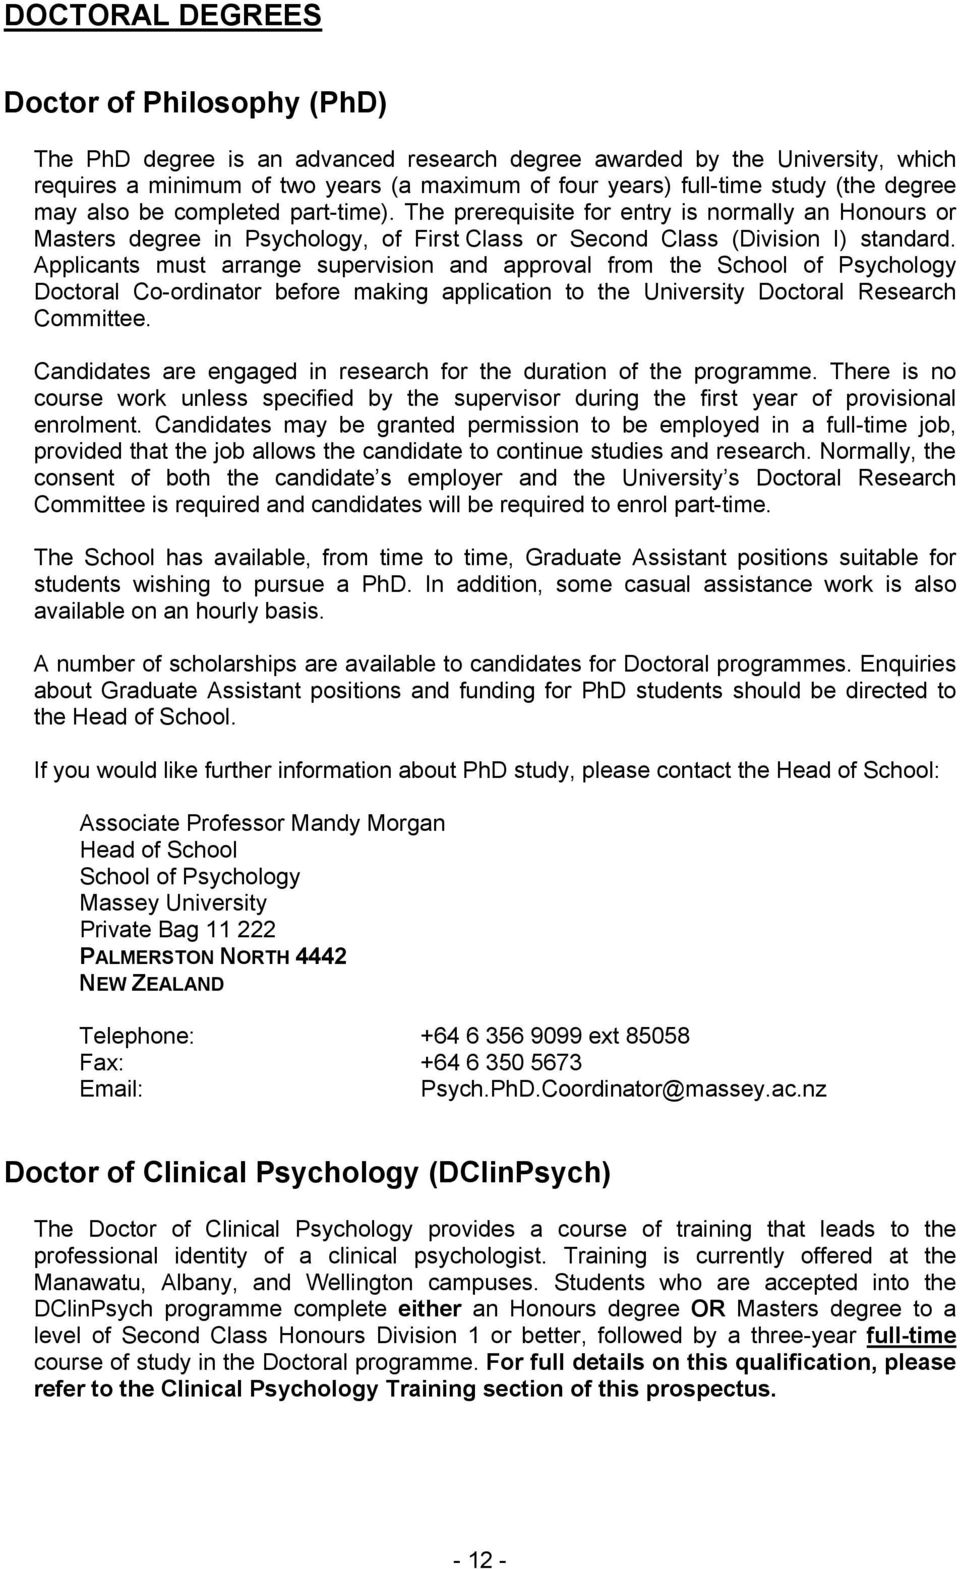 Applicants must arrange supervision and approval from the School of Psychology Doctoral Co-ordinator before making application to the University Doctoral Research Committee.